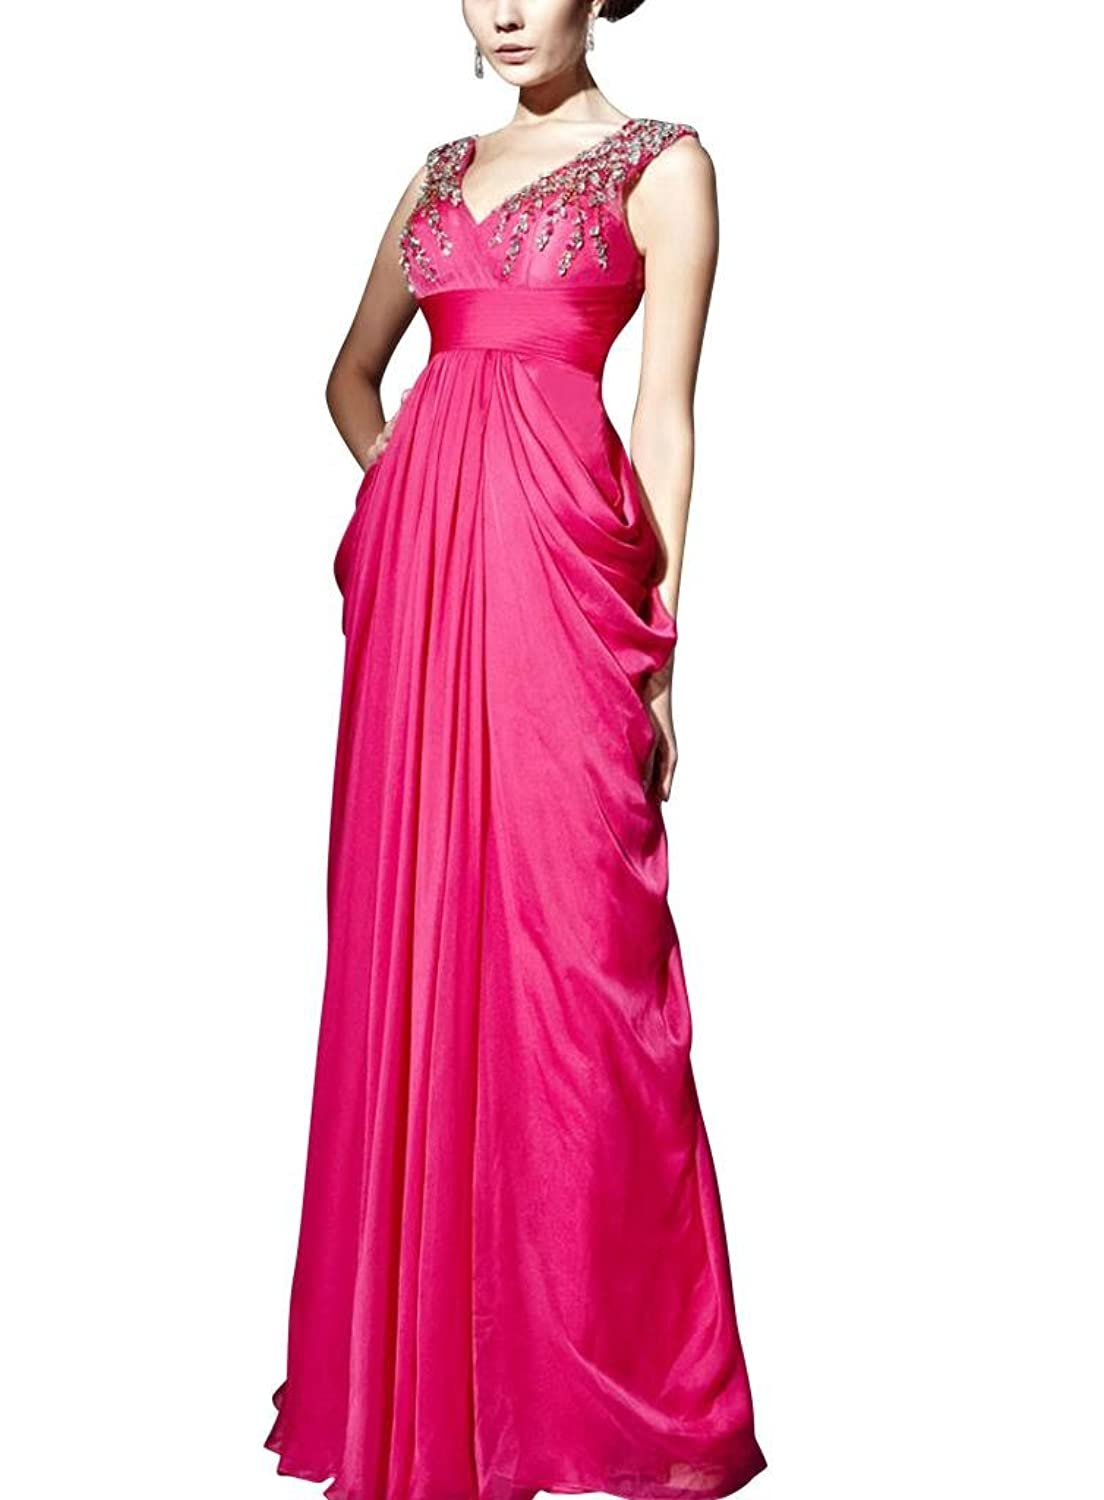 GEORGE BRIDE Fuchsia Sheath/ Column V Neck Floor-Length Chiffon Evening Dress With Beaded Lace Appliques